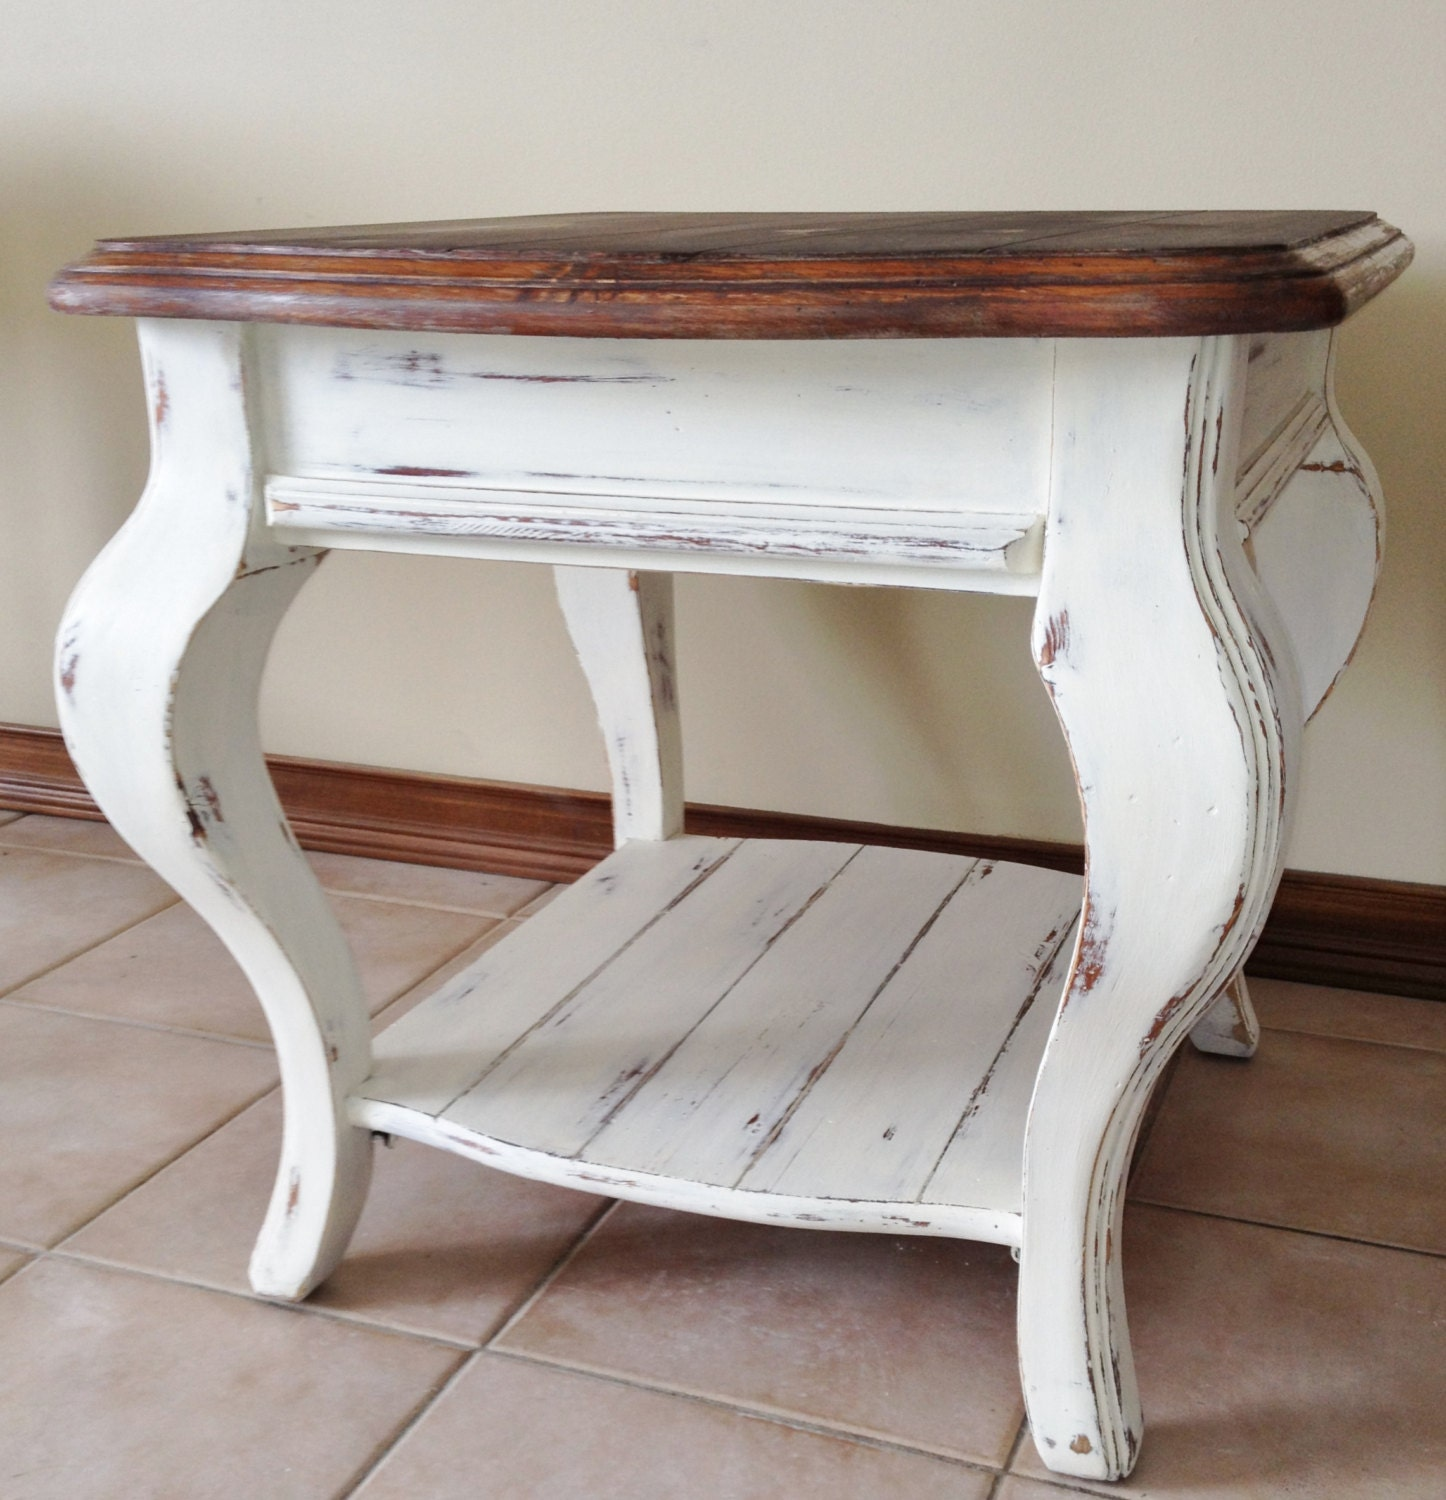 35 Best Images About Refinished Oak Tables On Pinterest: SOLD!!!!!Rustic Farmhouse/Cottage End Table Refinished